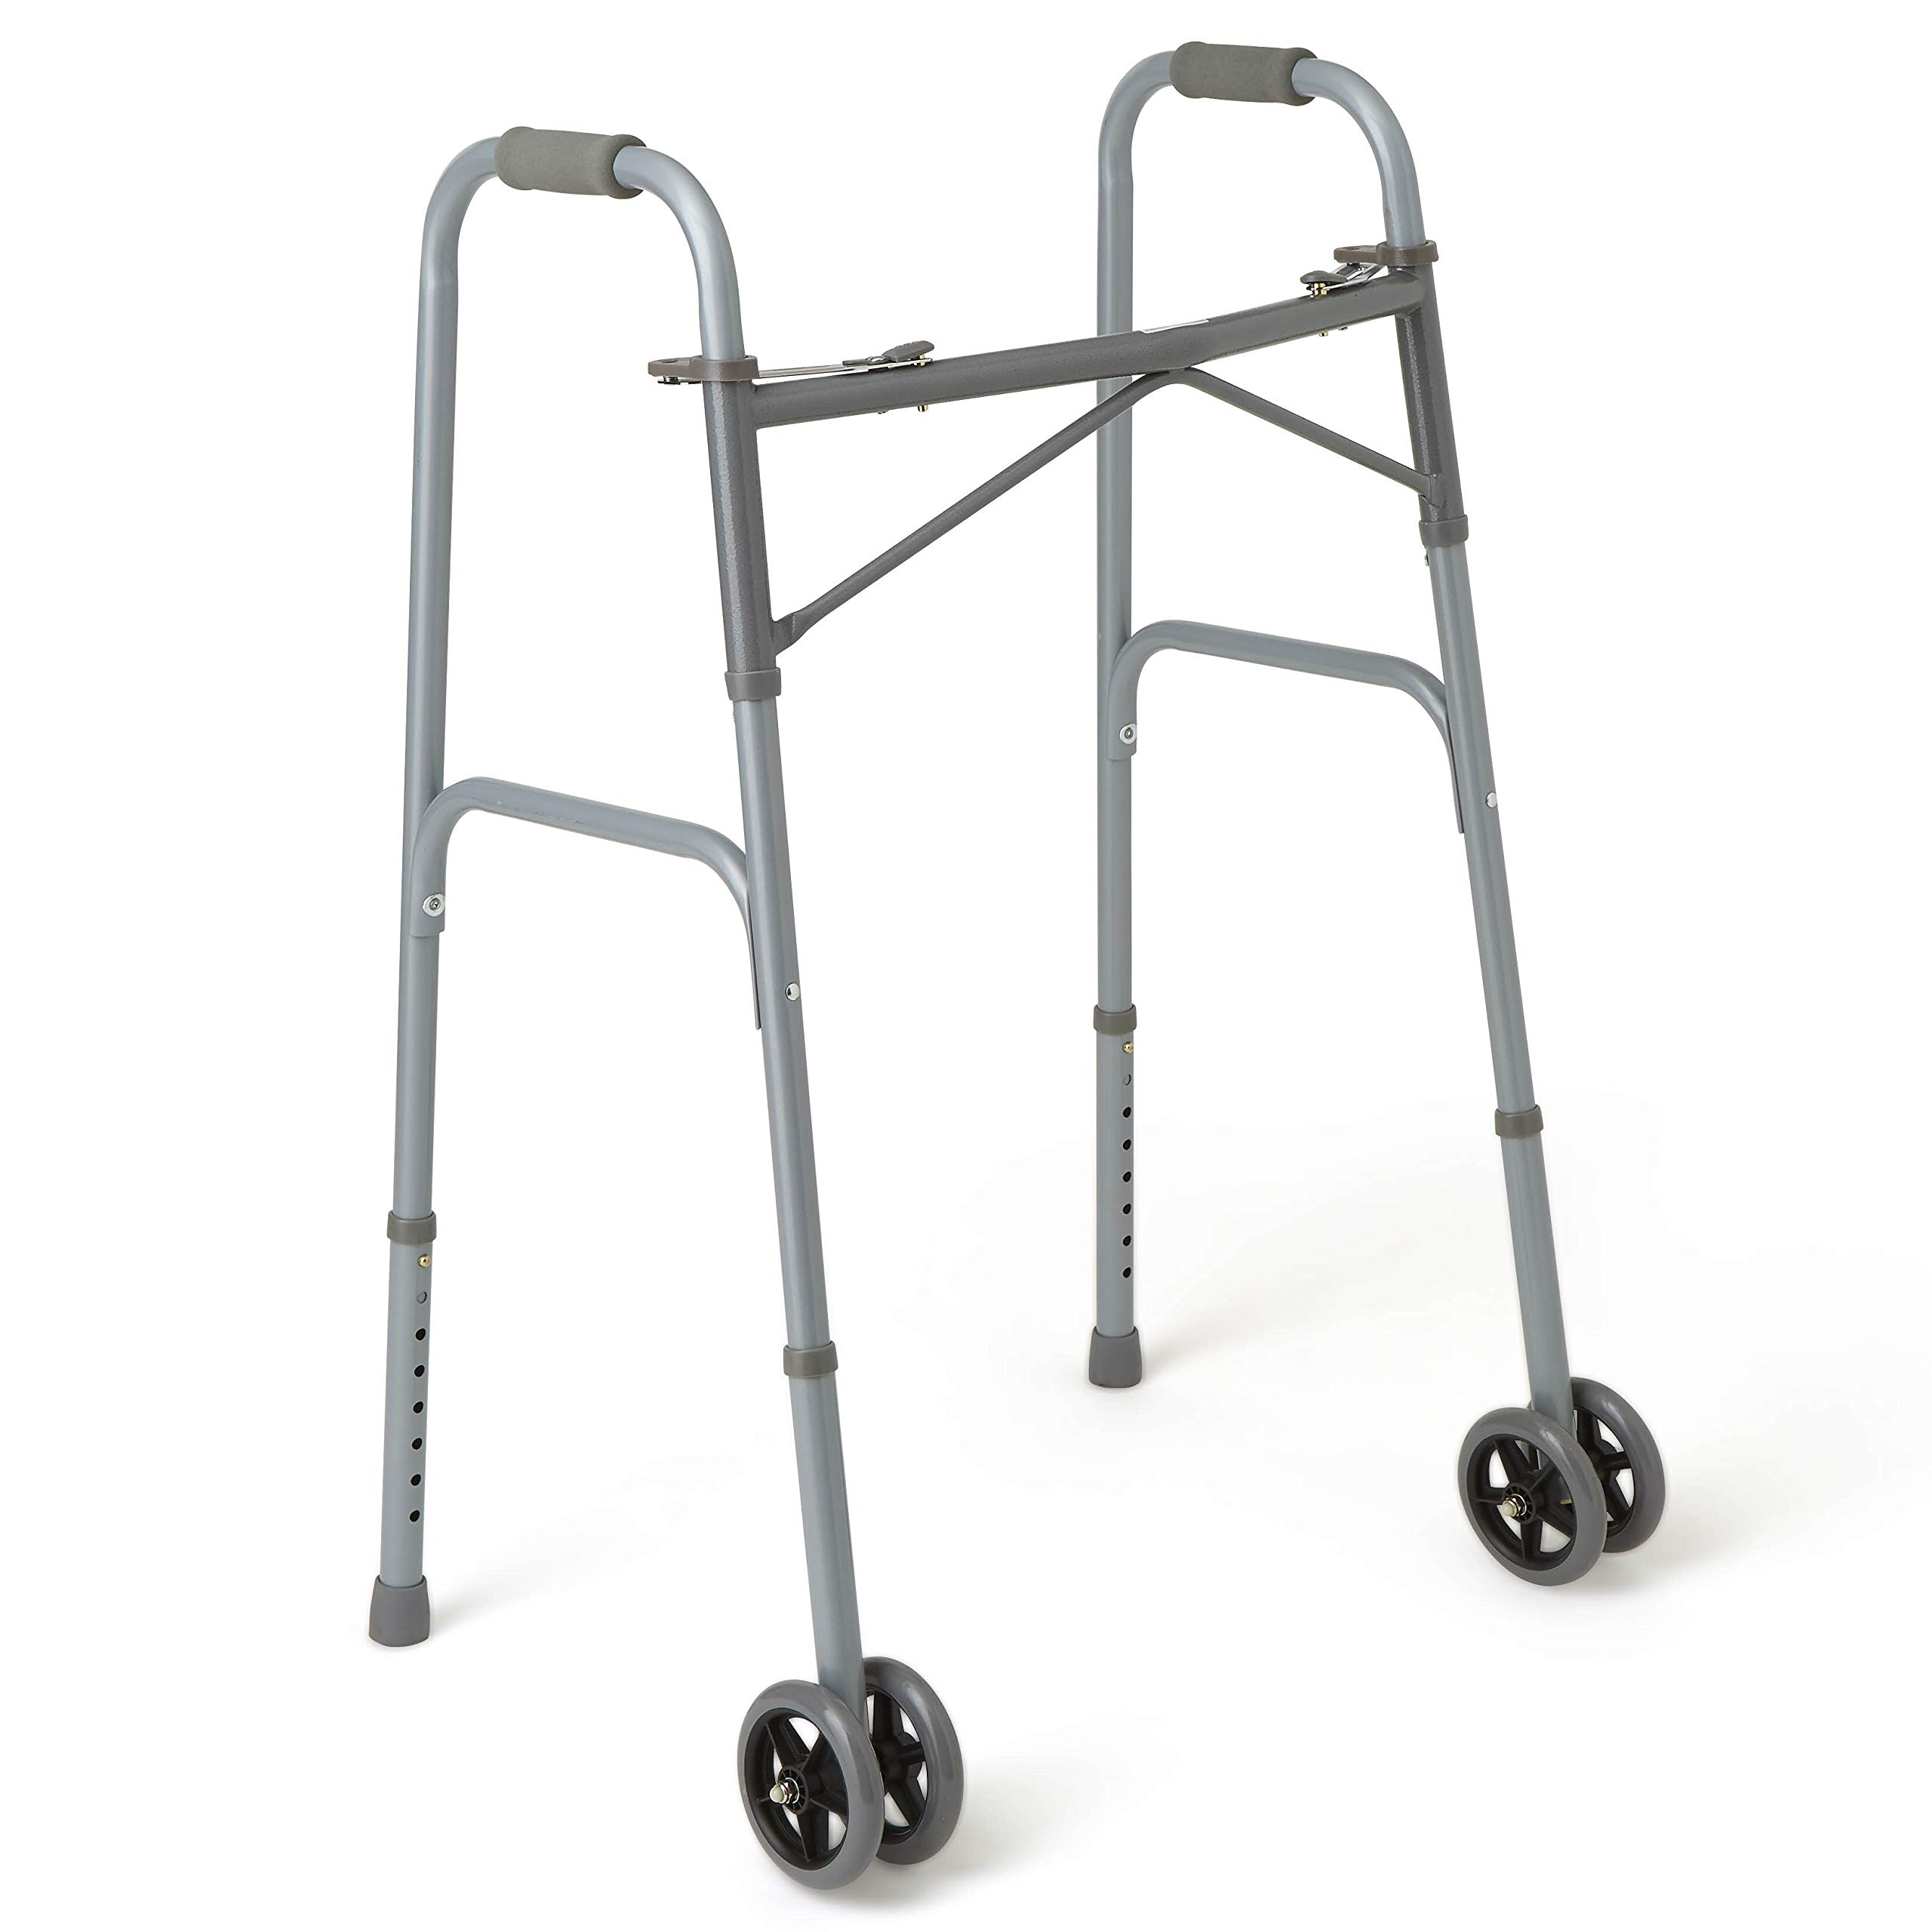 Medline Heavy Duty Bariatric Extra Wide Folding Walker wtih 5'' Wheels, Supports up to 600 lbs, Comfort Foam Hand Grips by Medline